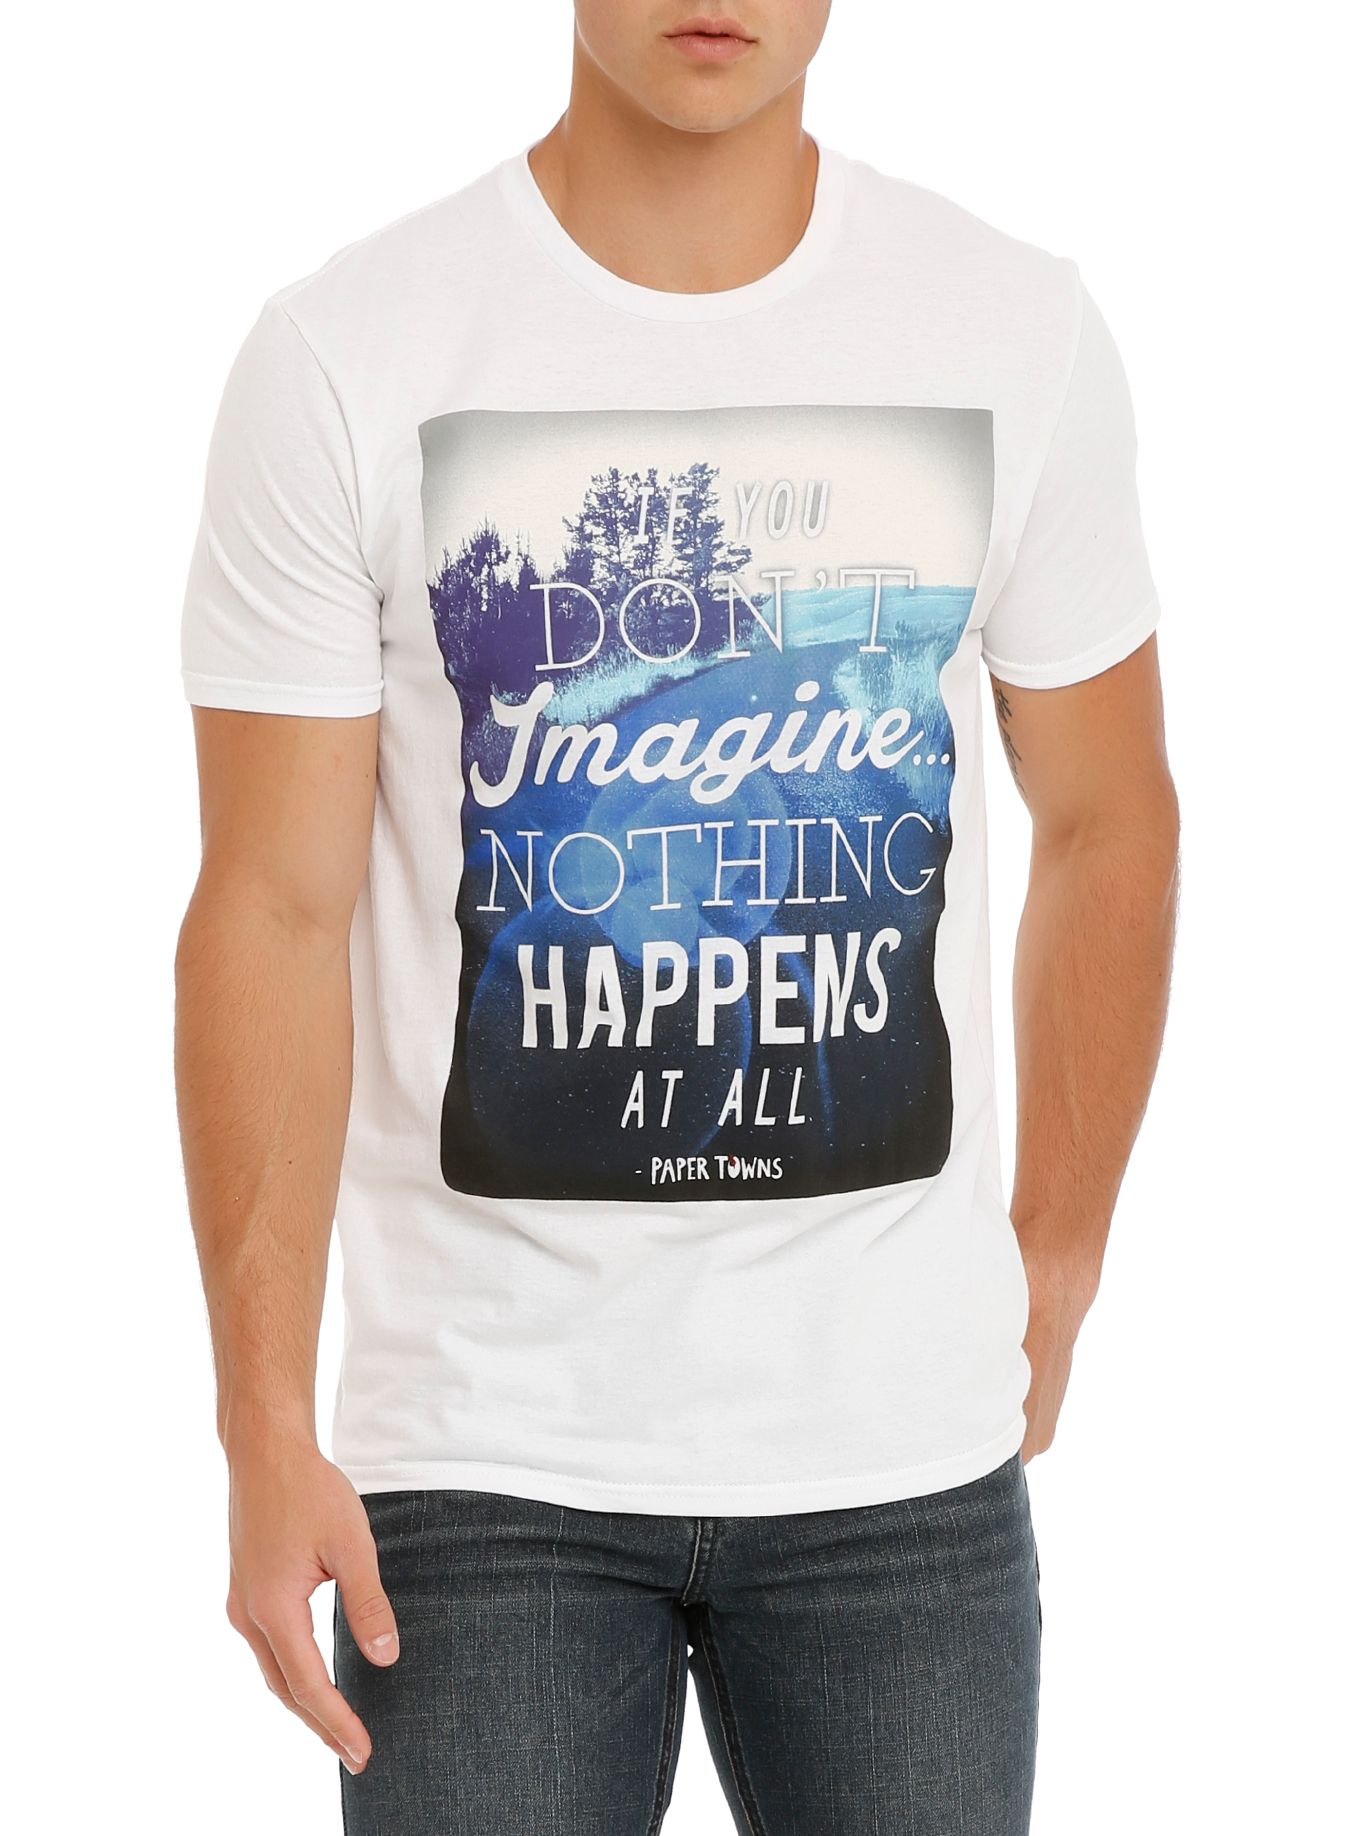 Shirt design paper